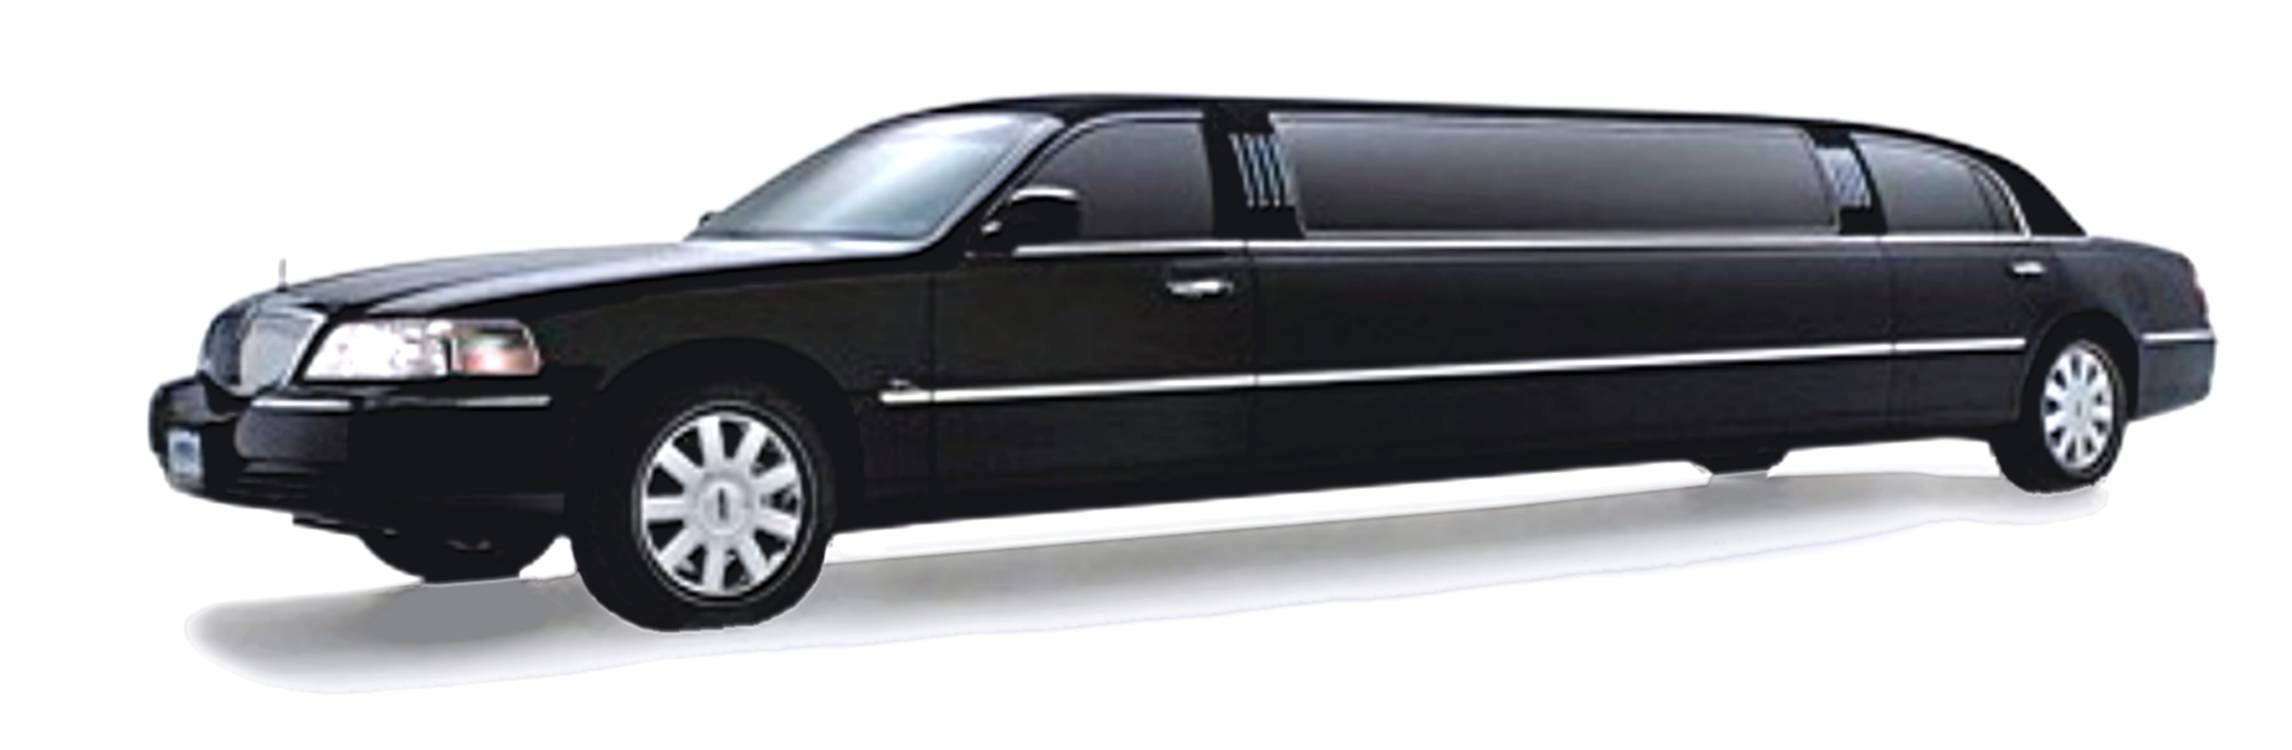 Limo clipart graphic transparent stock Stretch limo clipart 8 » Clipart Portal graphic transparent stock